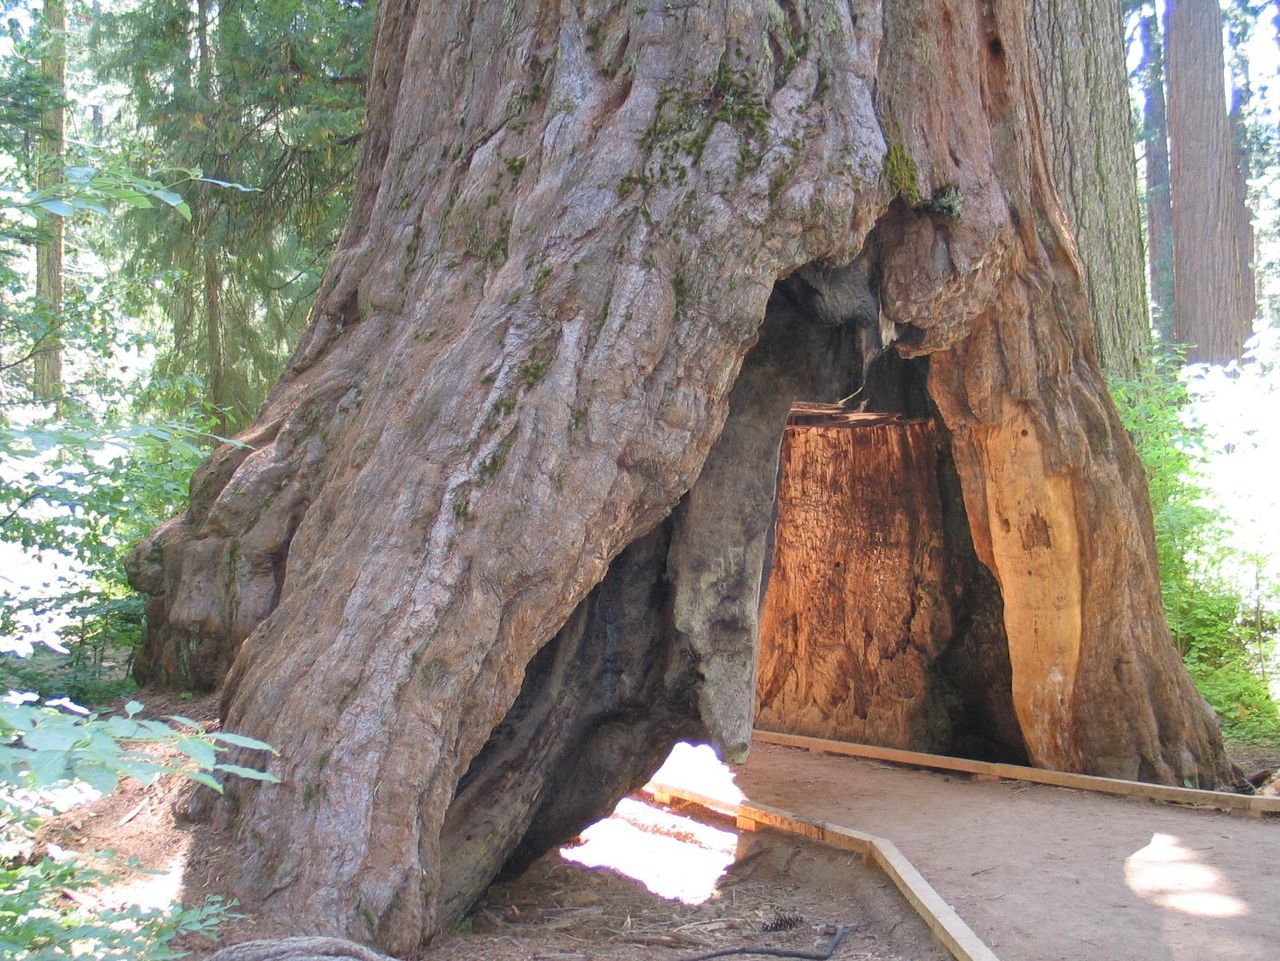 Photo of the tree from 2006. Tree has a tunnel through center of trunk. There is a marked path for people to walk through it.